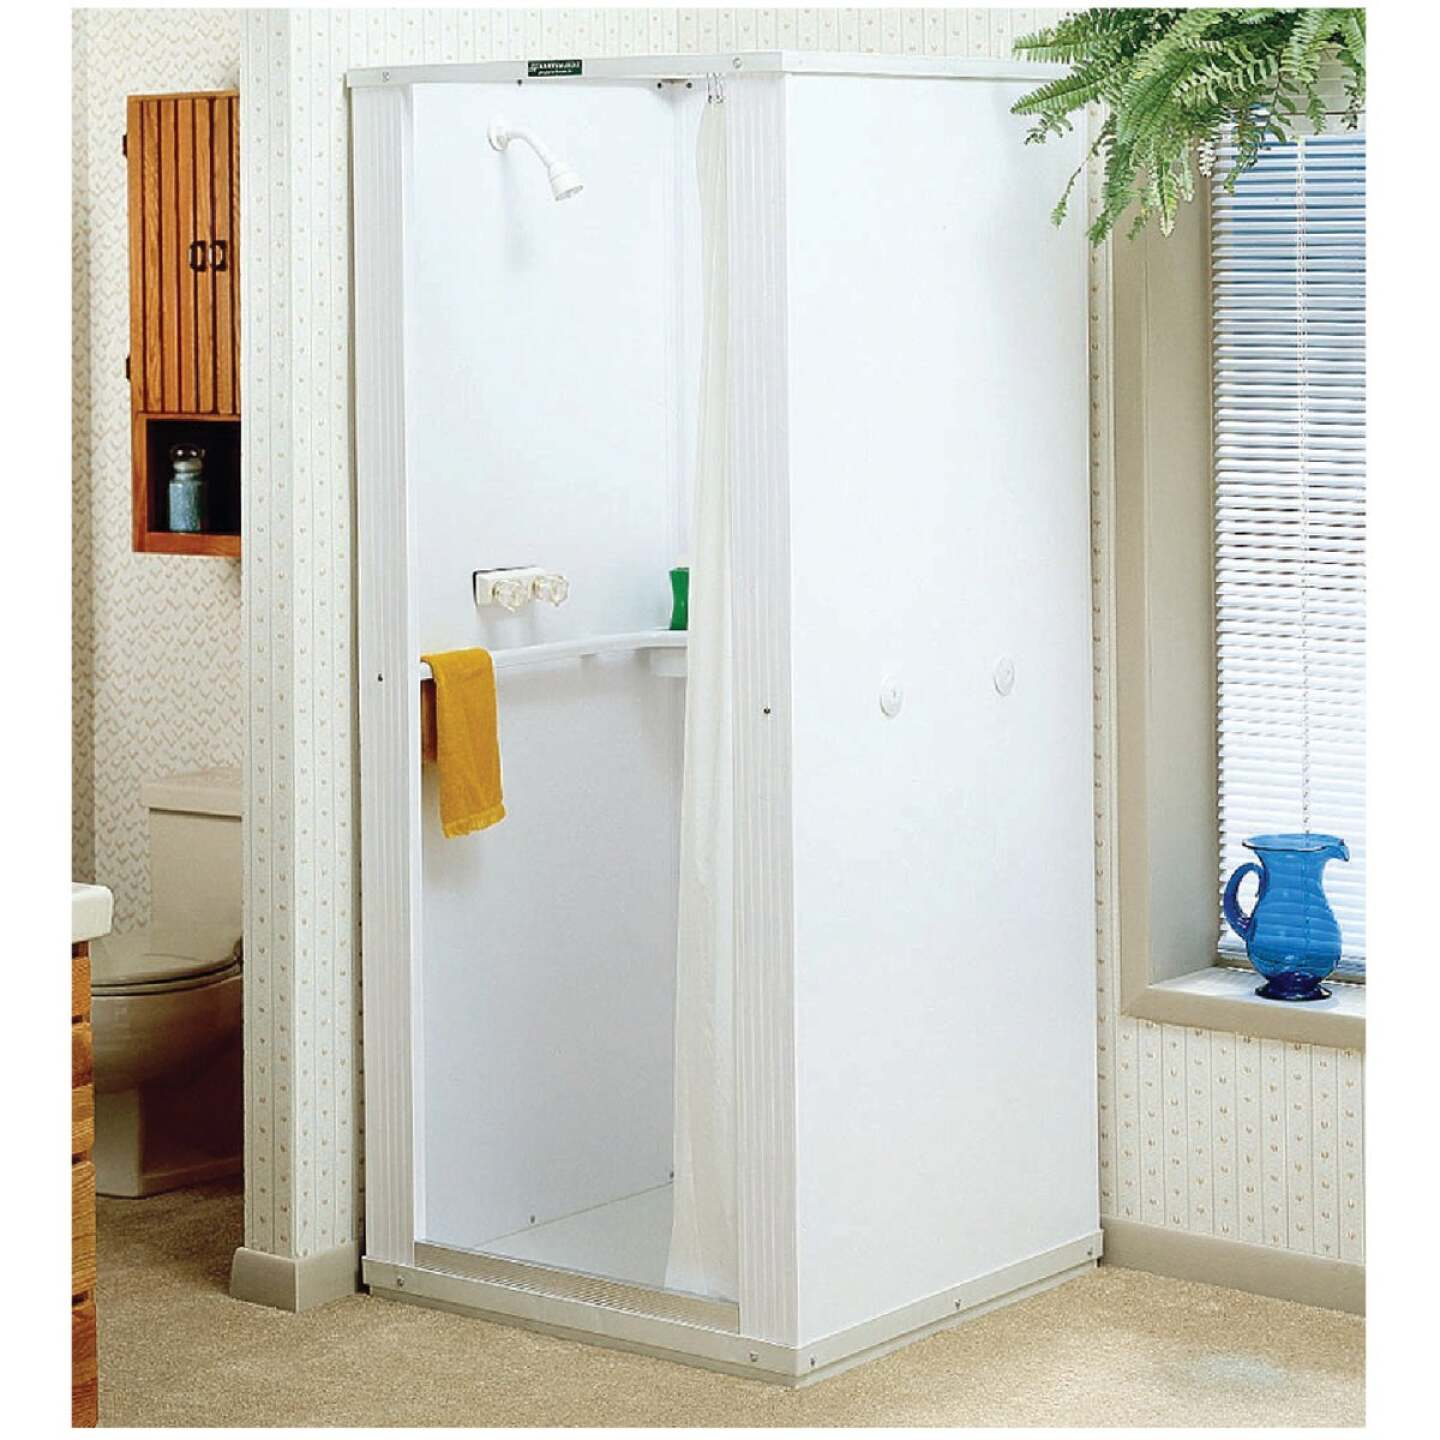 Mustee Durastall 32-5/8 In. x 32-5/8 In. x 75-3/8 In. White Co-polymer Plastic Shower Stall Image 1